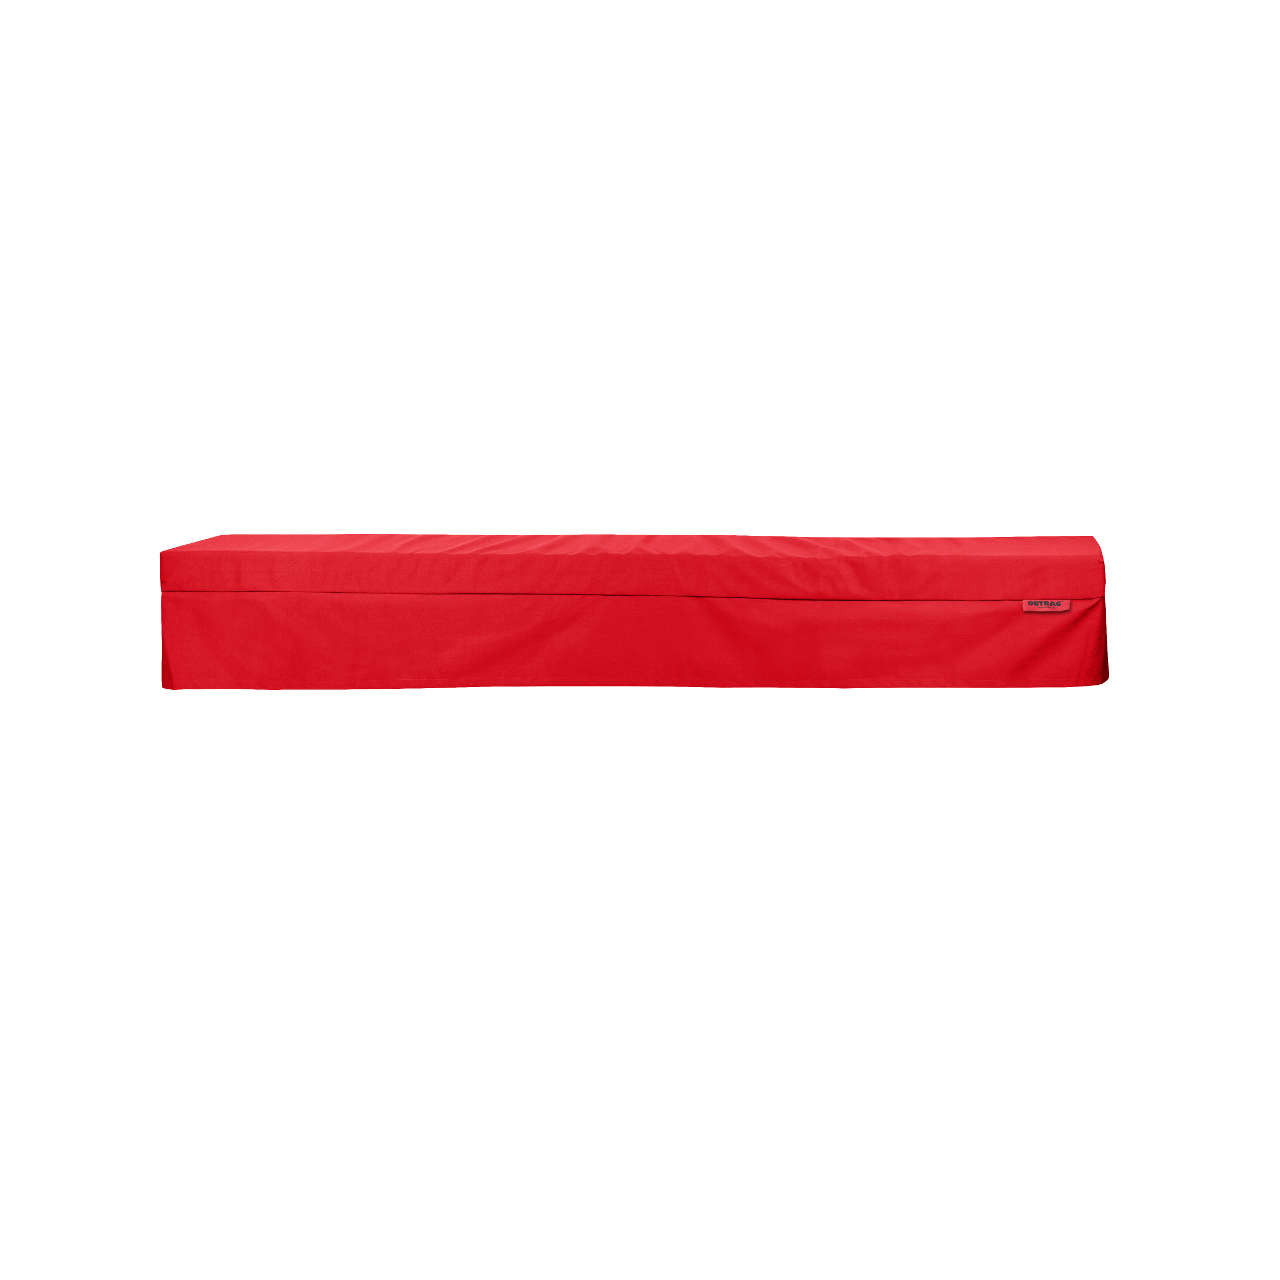 Outbag Sitzbankauflage Sitzbankpolster Bench plus red